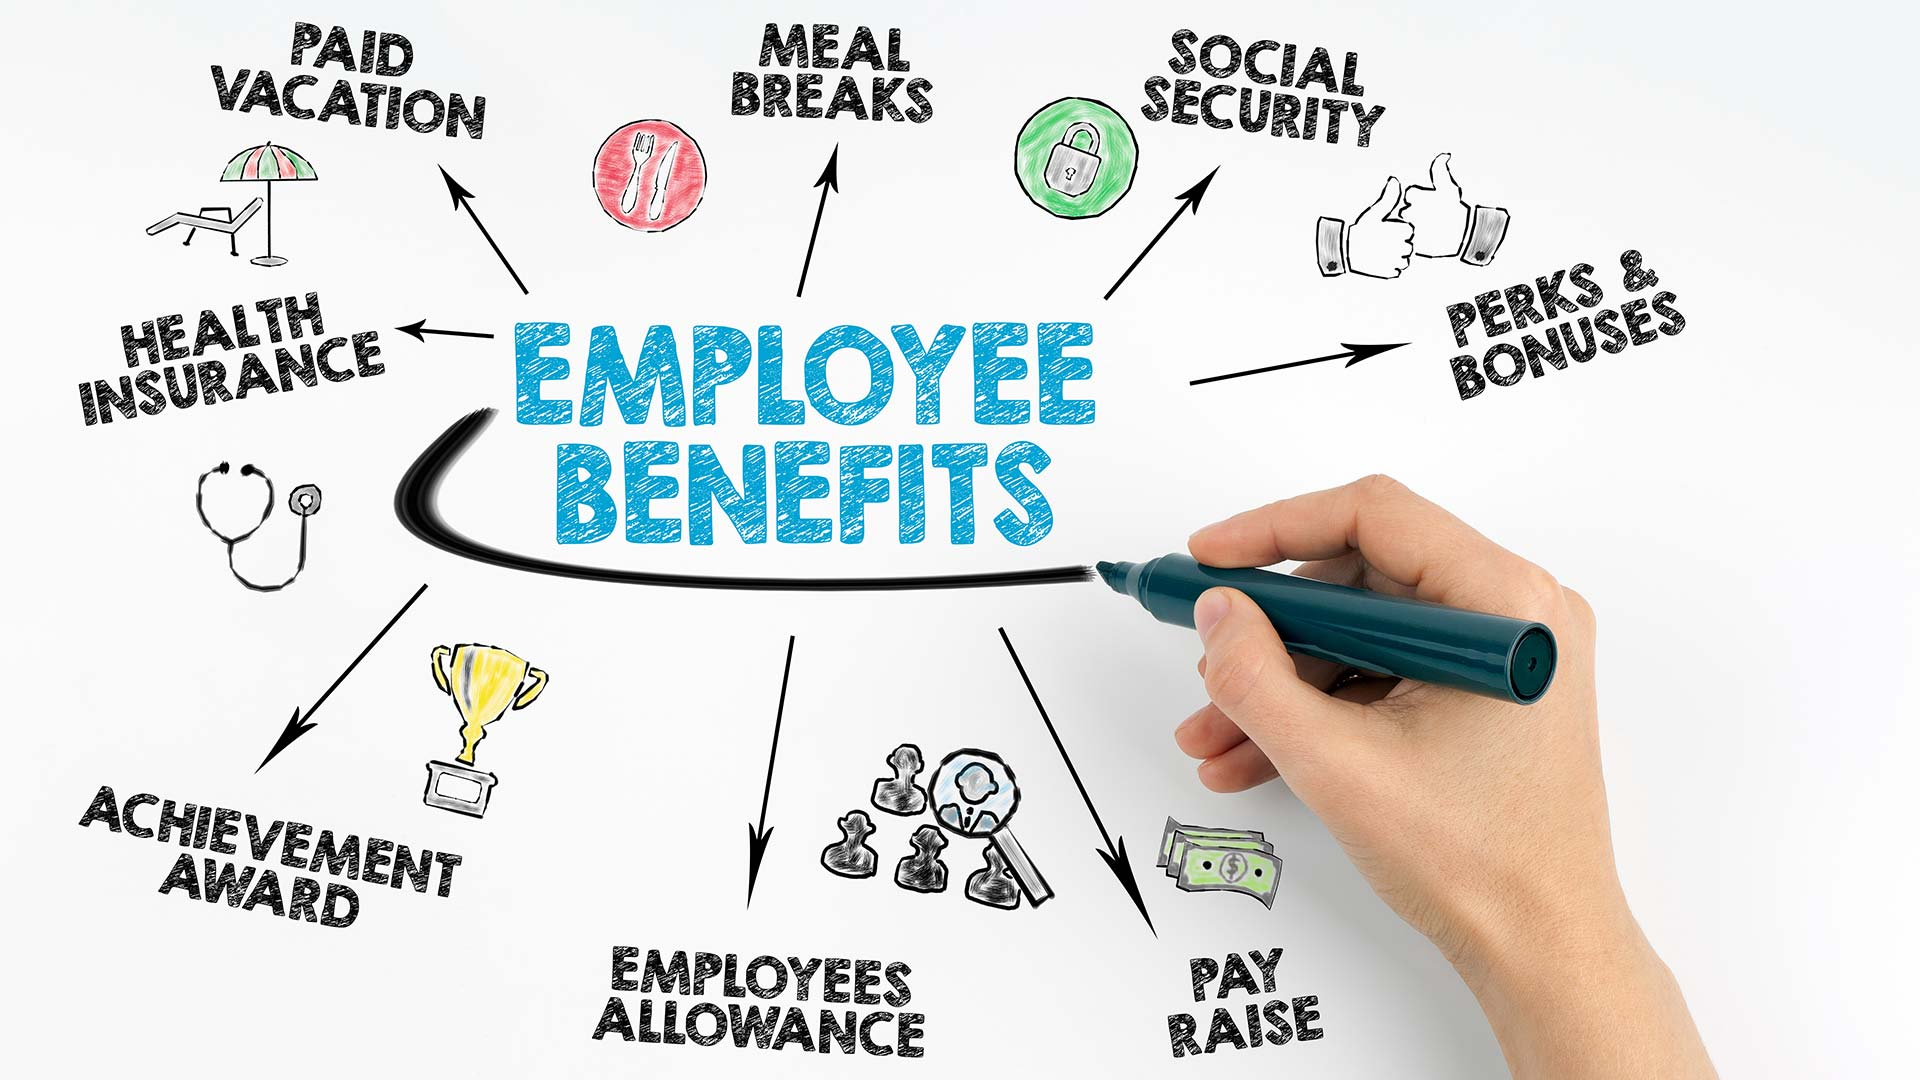 Nearly 35 Percent Of Companies Improve Benefits To Attract